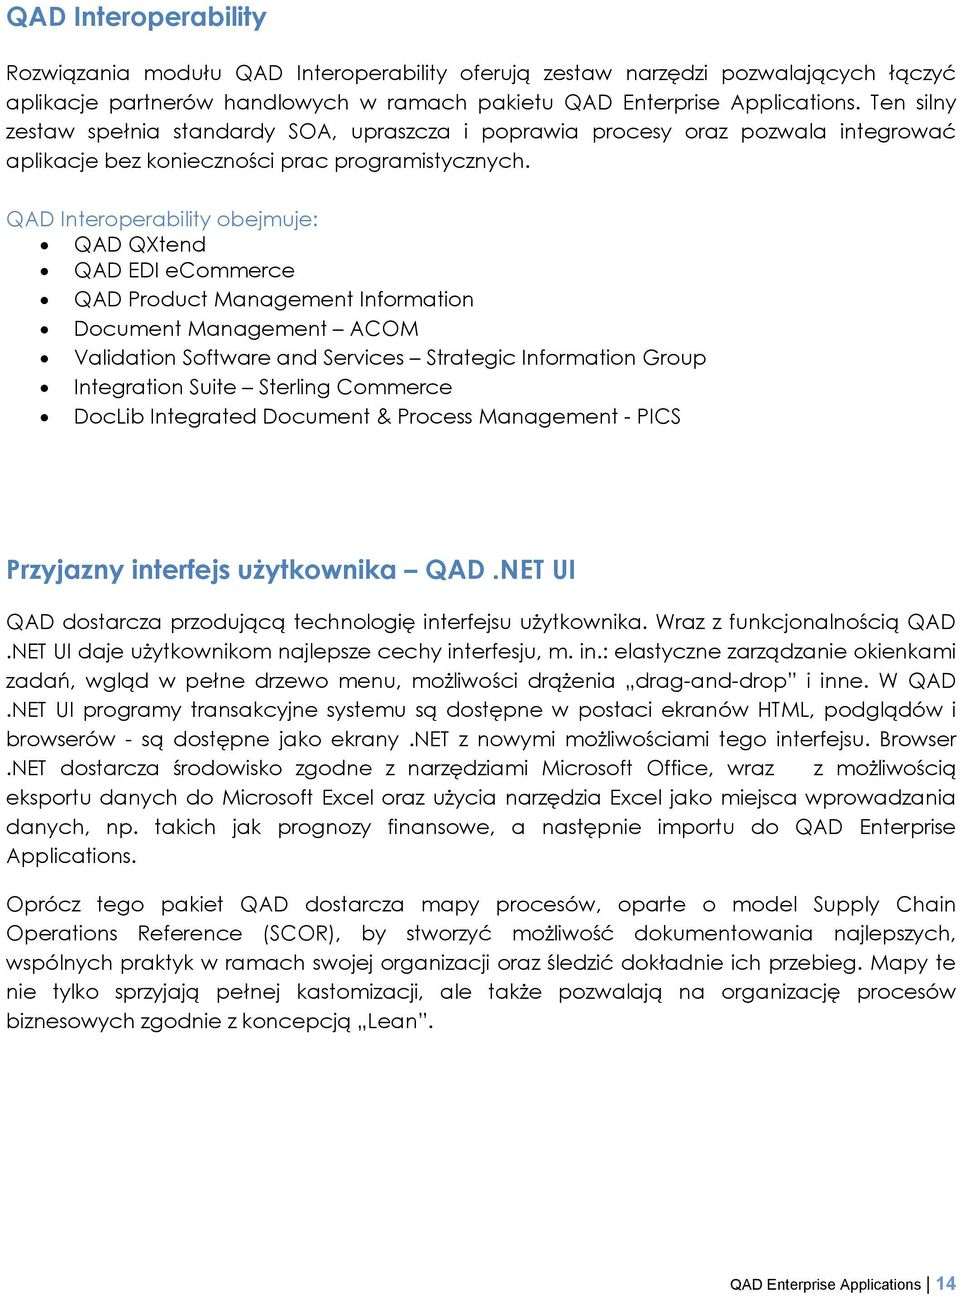 QAD Interoperability obejmuje: QAD QXtend QAD EDI ecommerce QAD Product Management Information Document Management ACOM Validation Software and Services Strategic Information Group Integration Suite